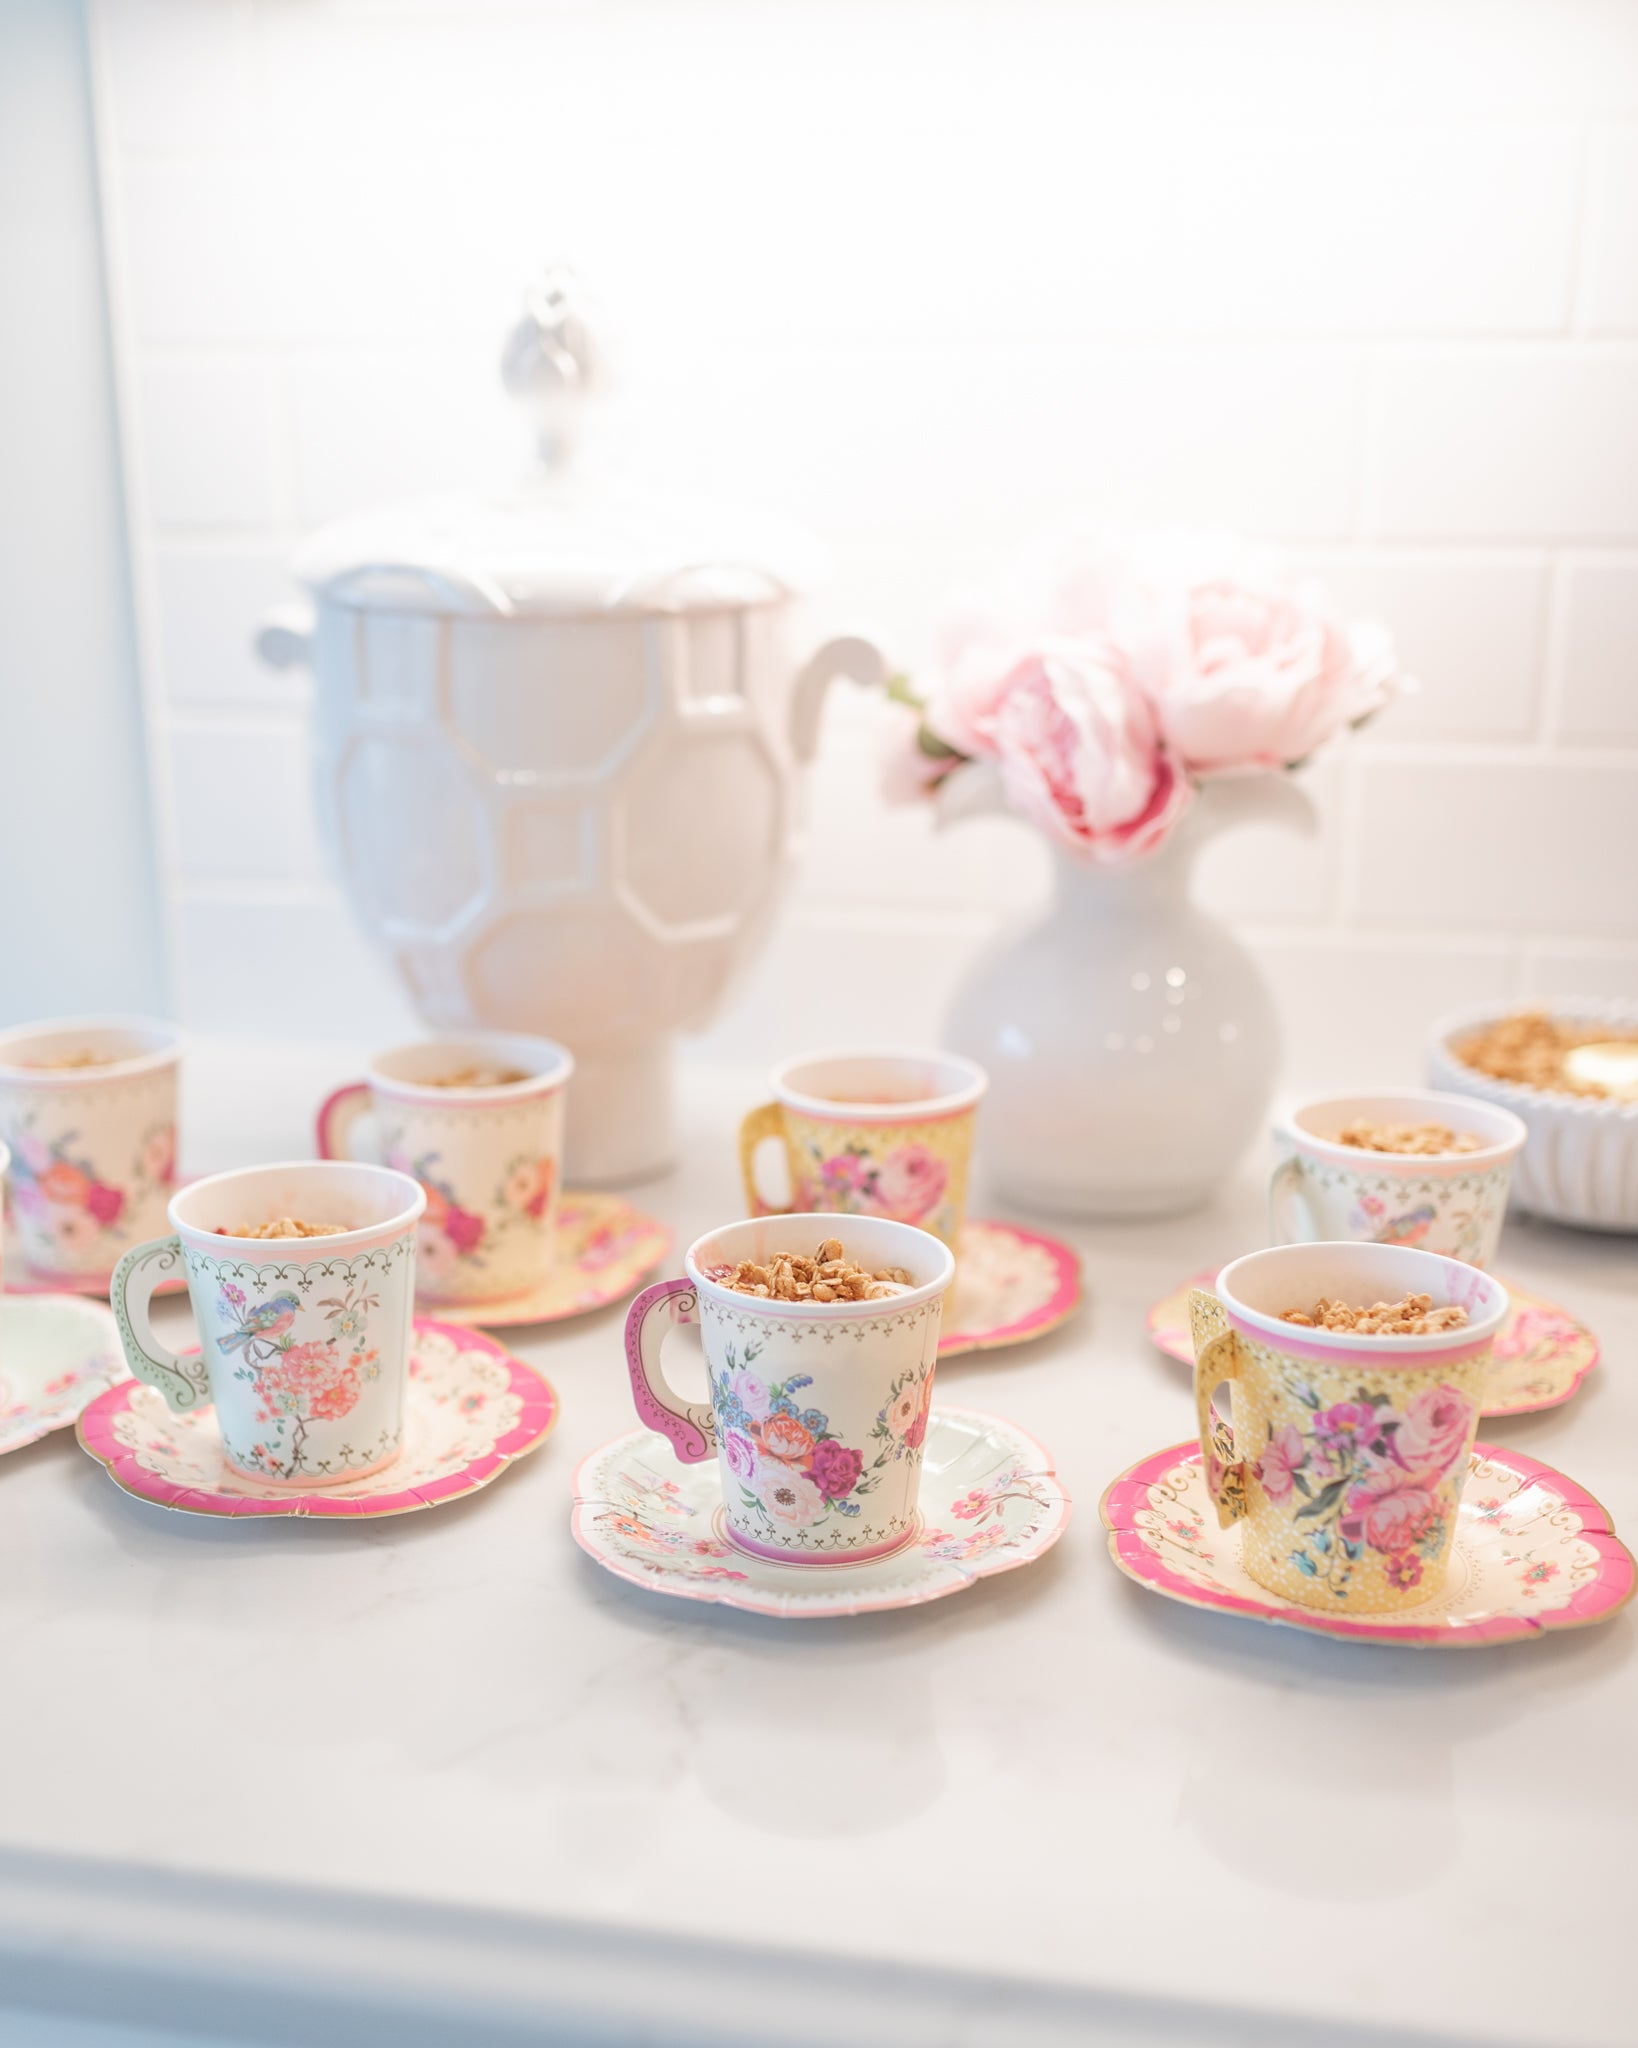 Yoghurt parfait bar tea cups - birthday party inspiration The Brooke Brooke Charlotte sy Dimby celebrating the magic of childhood